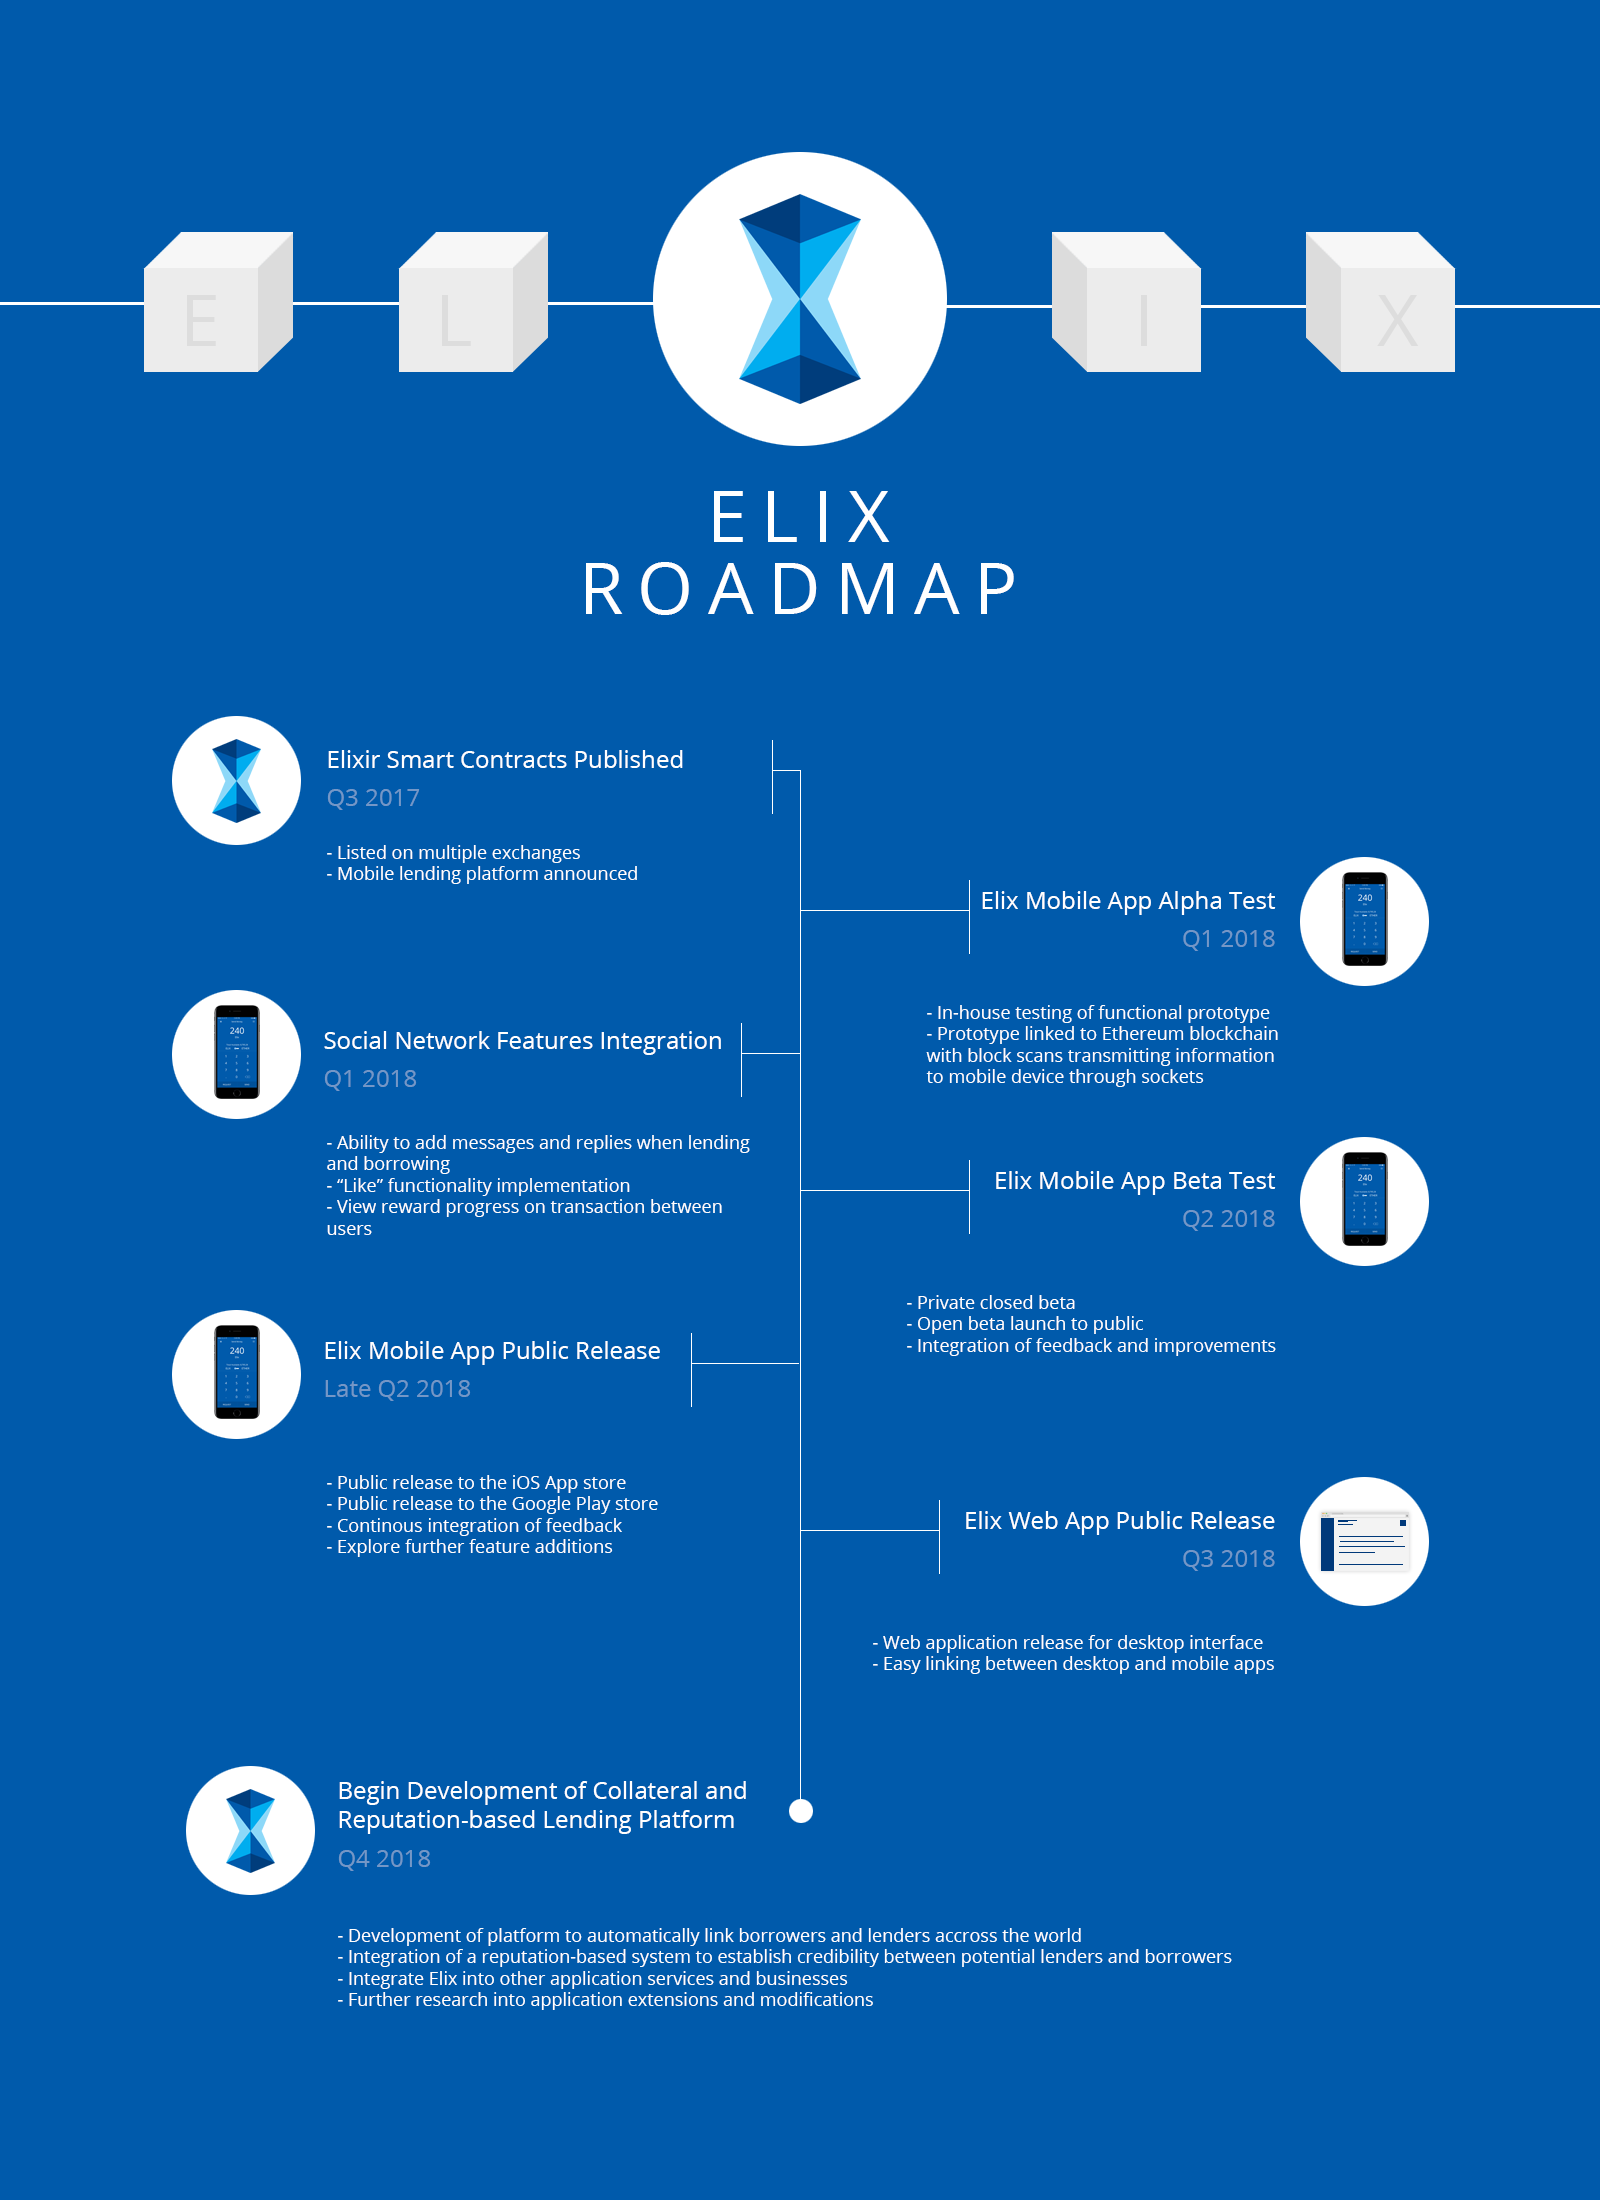 with you the elix roadmap outlining our future products and services we look forward to providing you with regular updates on our development progress